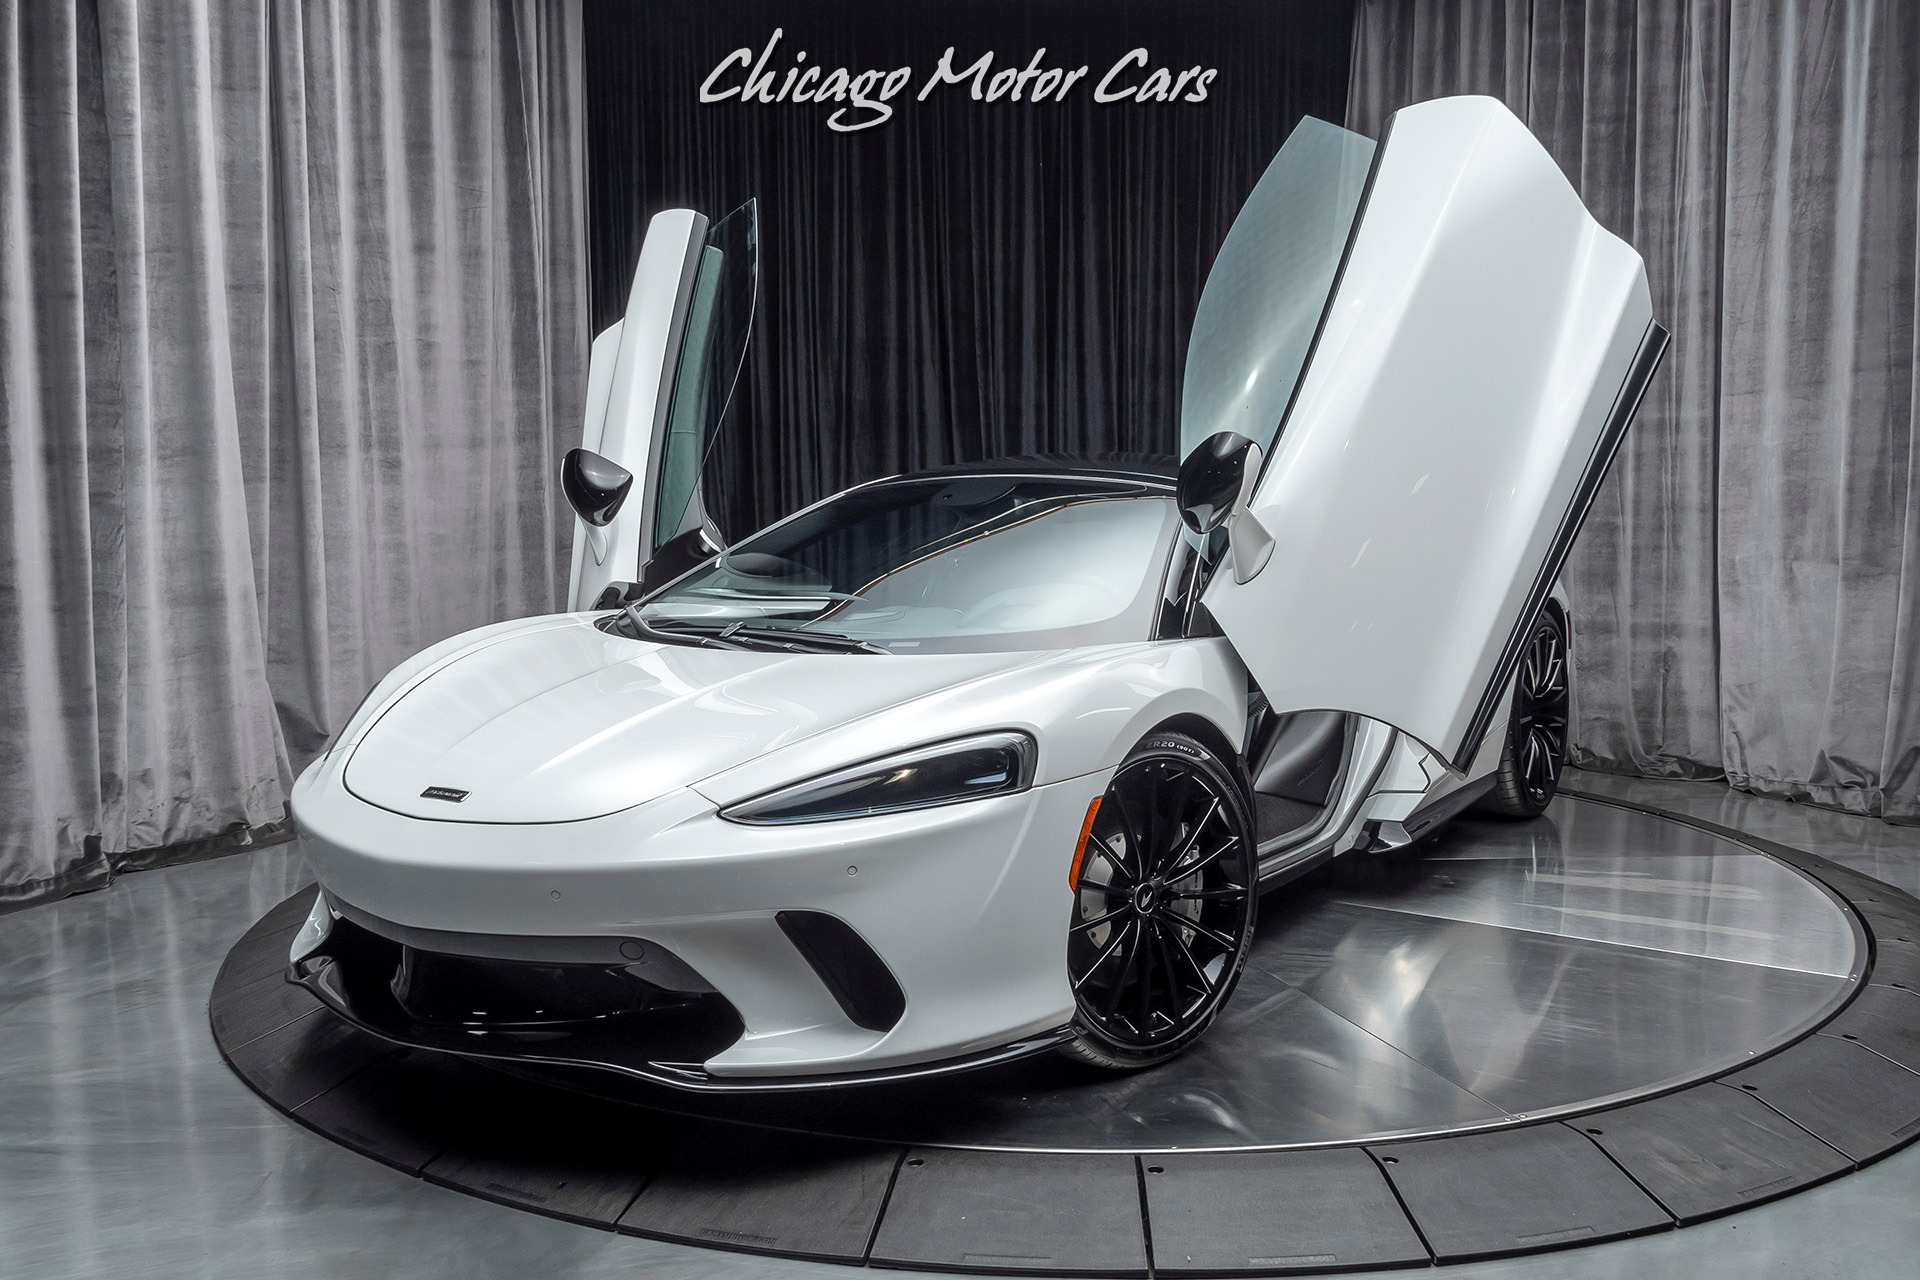 Used-2020-McLaren-GT-P22-Luxe-Coupe---Original-MSRP-243k-ONLY-90-MILES-PREMIUM-PACK